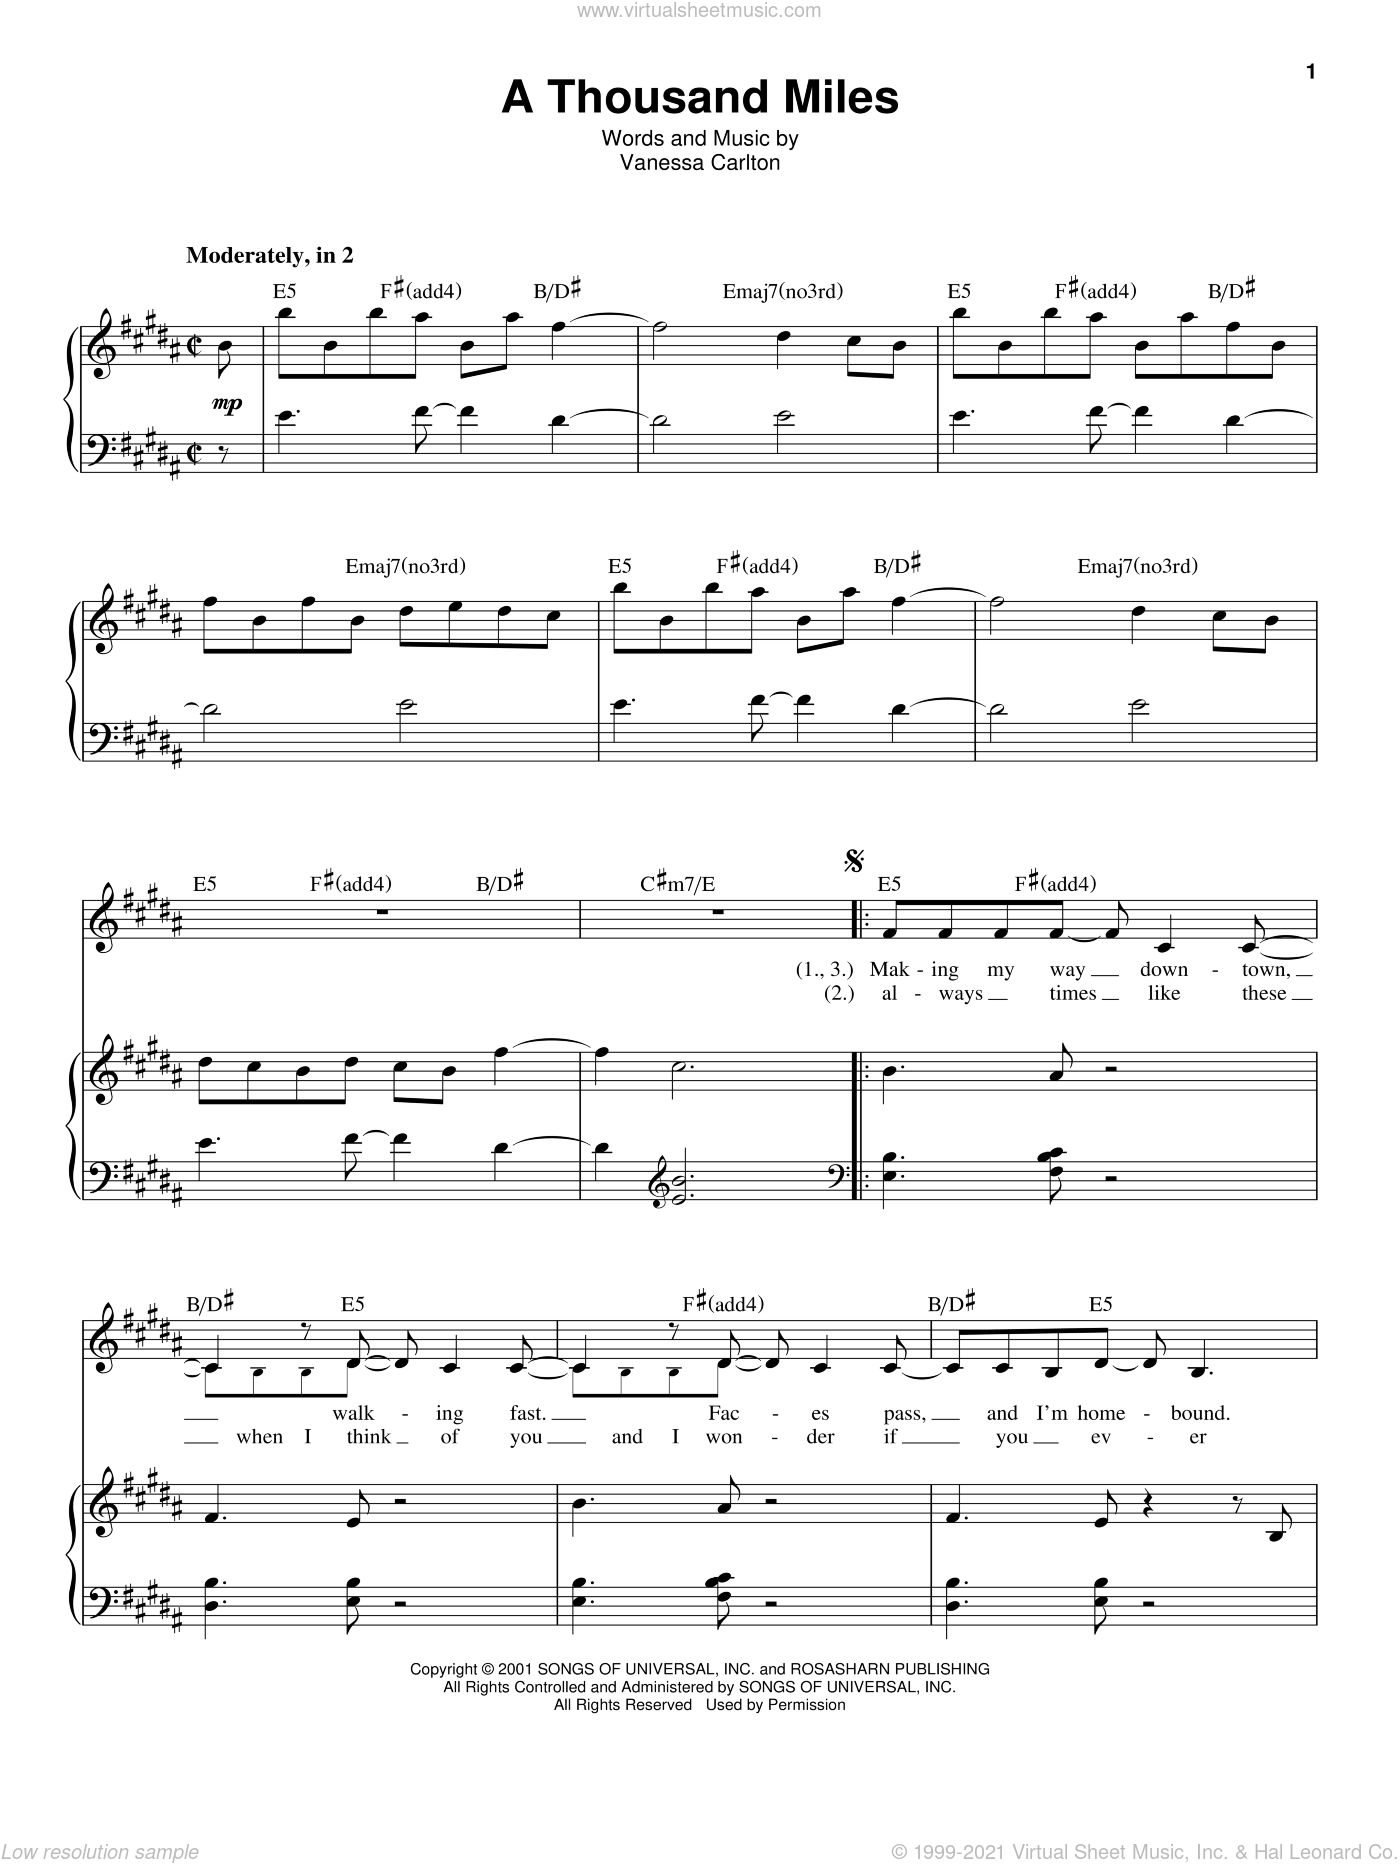 A Thousand Miles sheet music for voice and piano by Vanessa Carlton